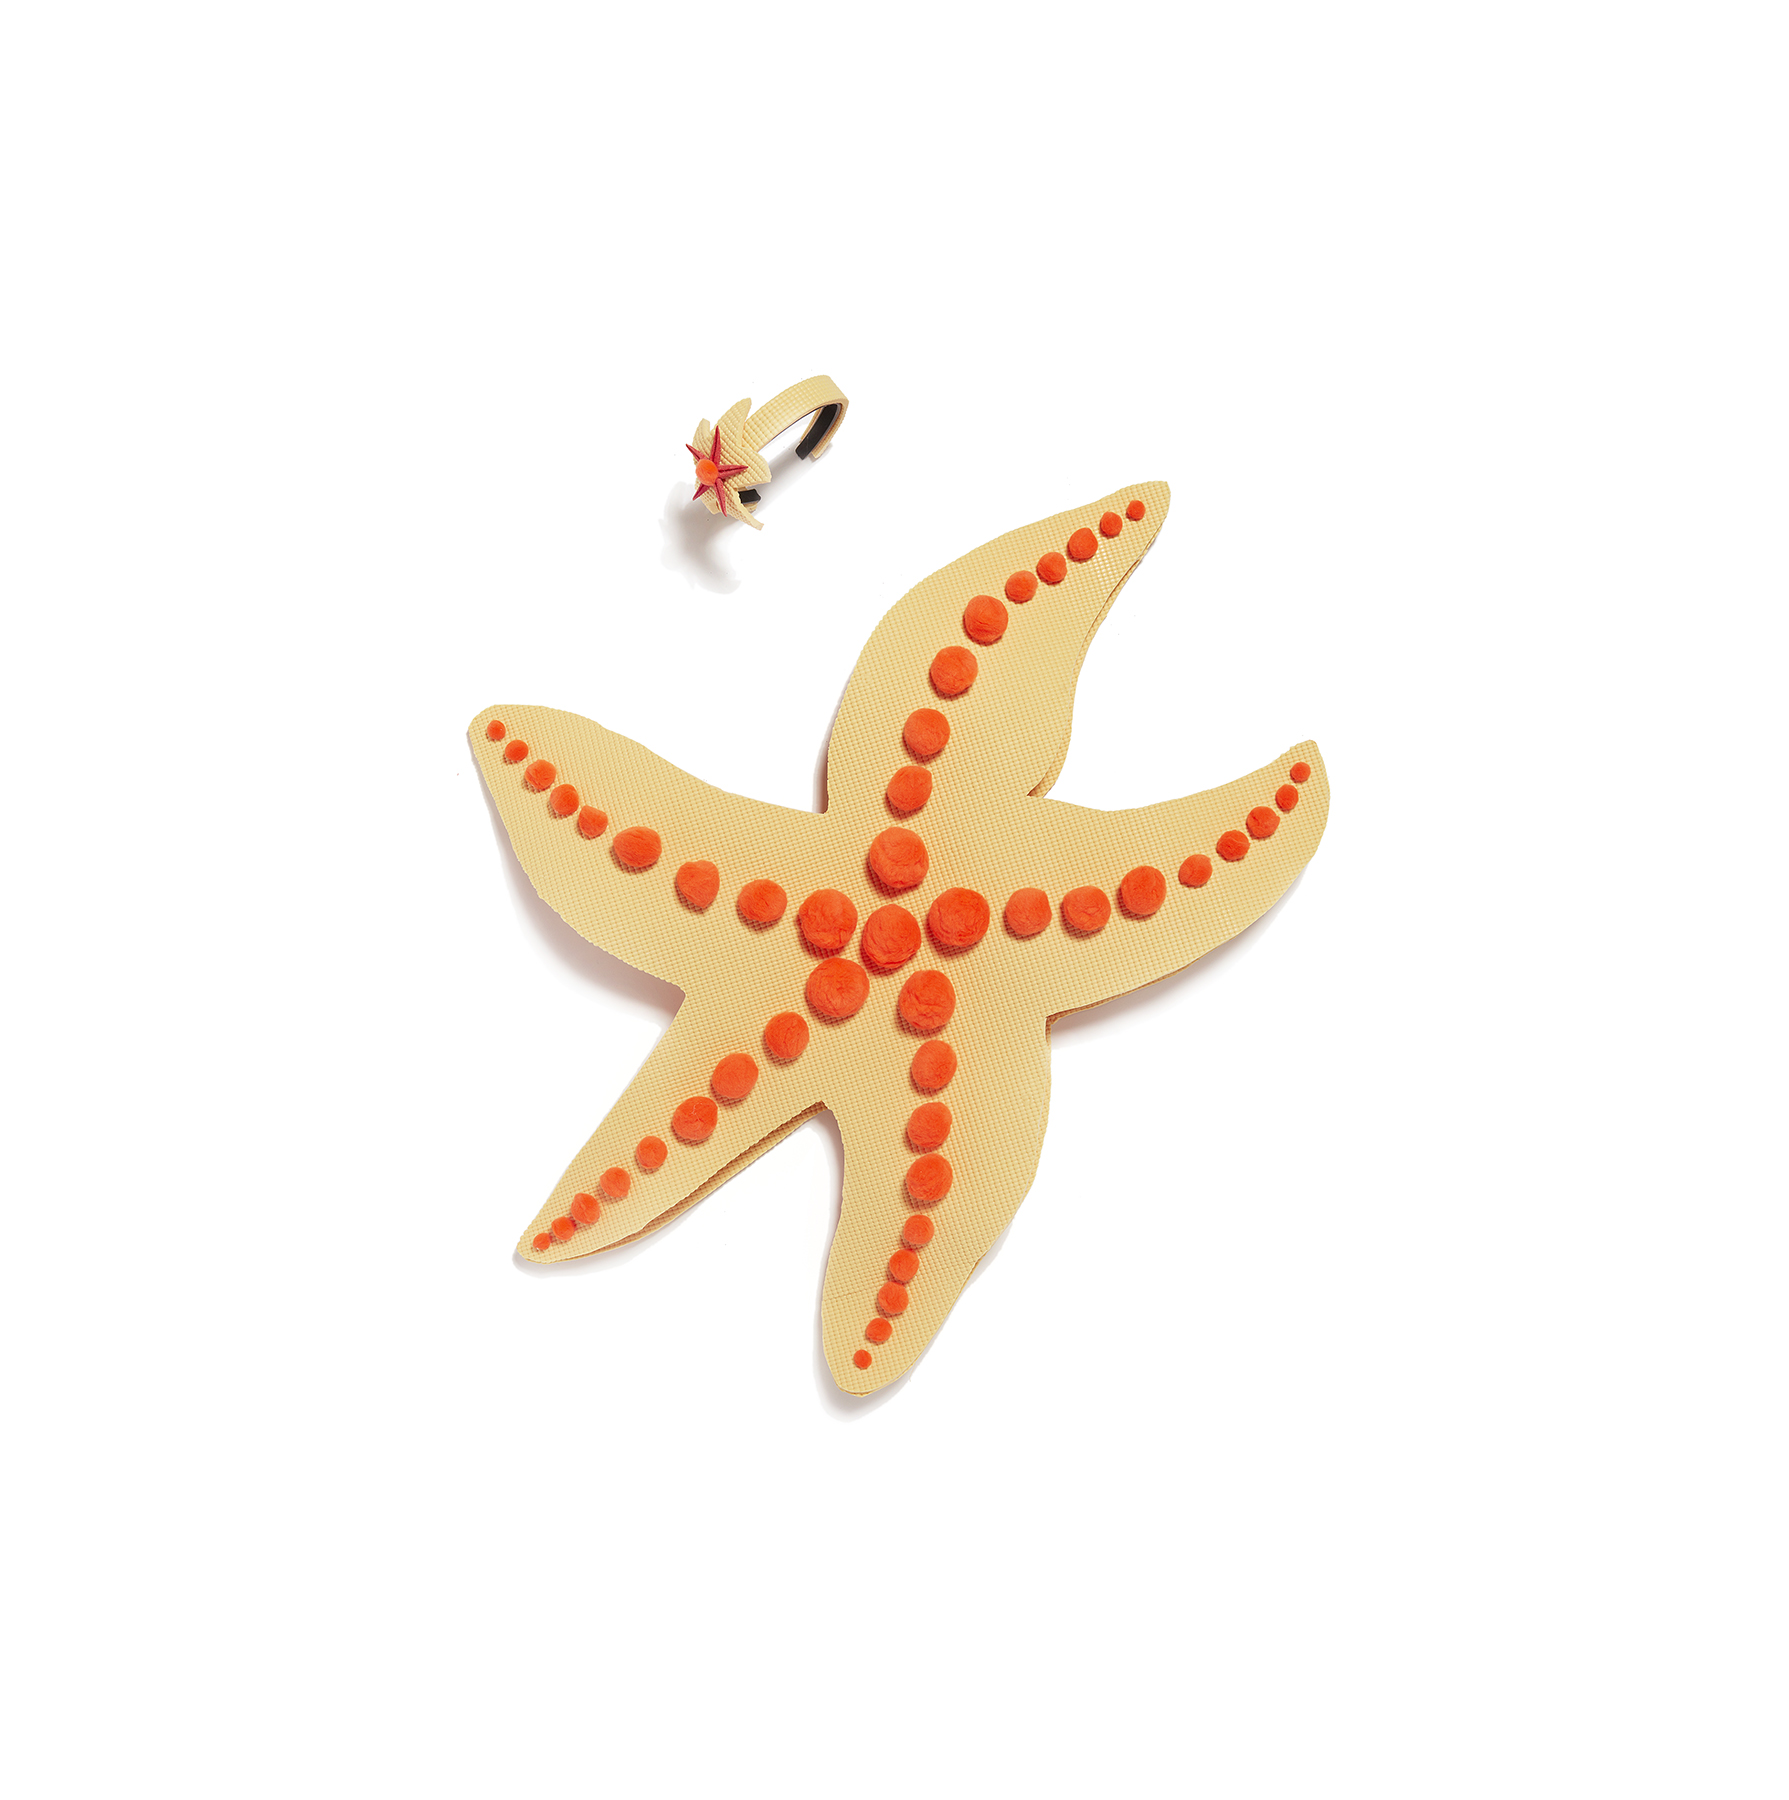 Starfish costume